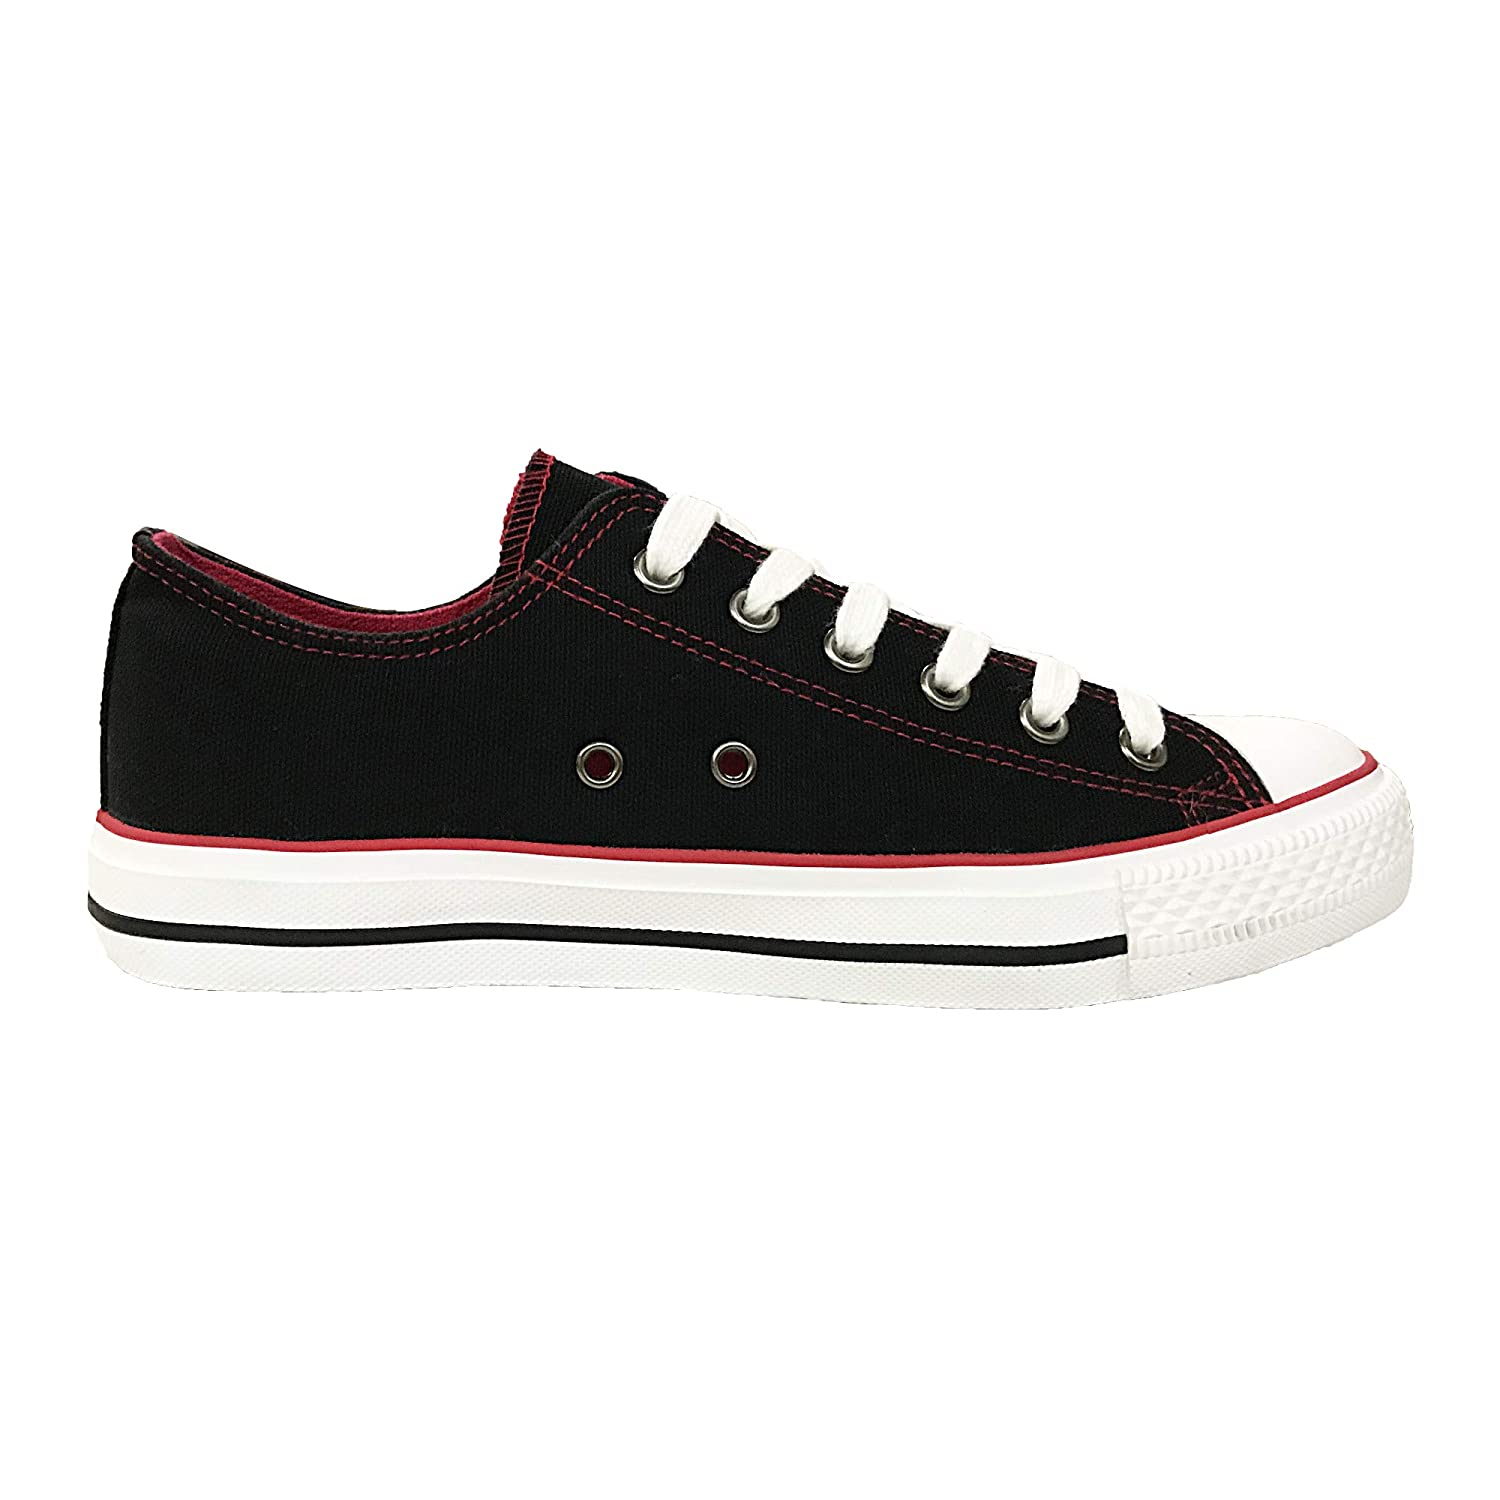 Canvas Classic - Black & Red Lantina Women's Low Top Fashion Sneakers